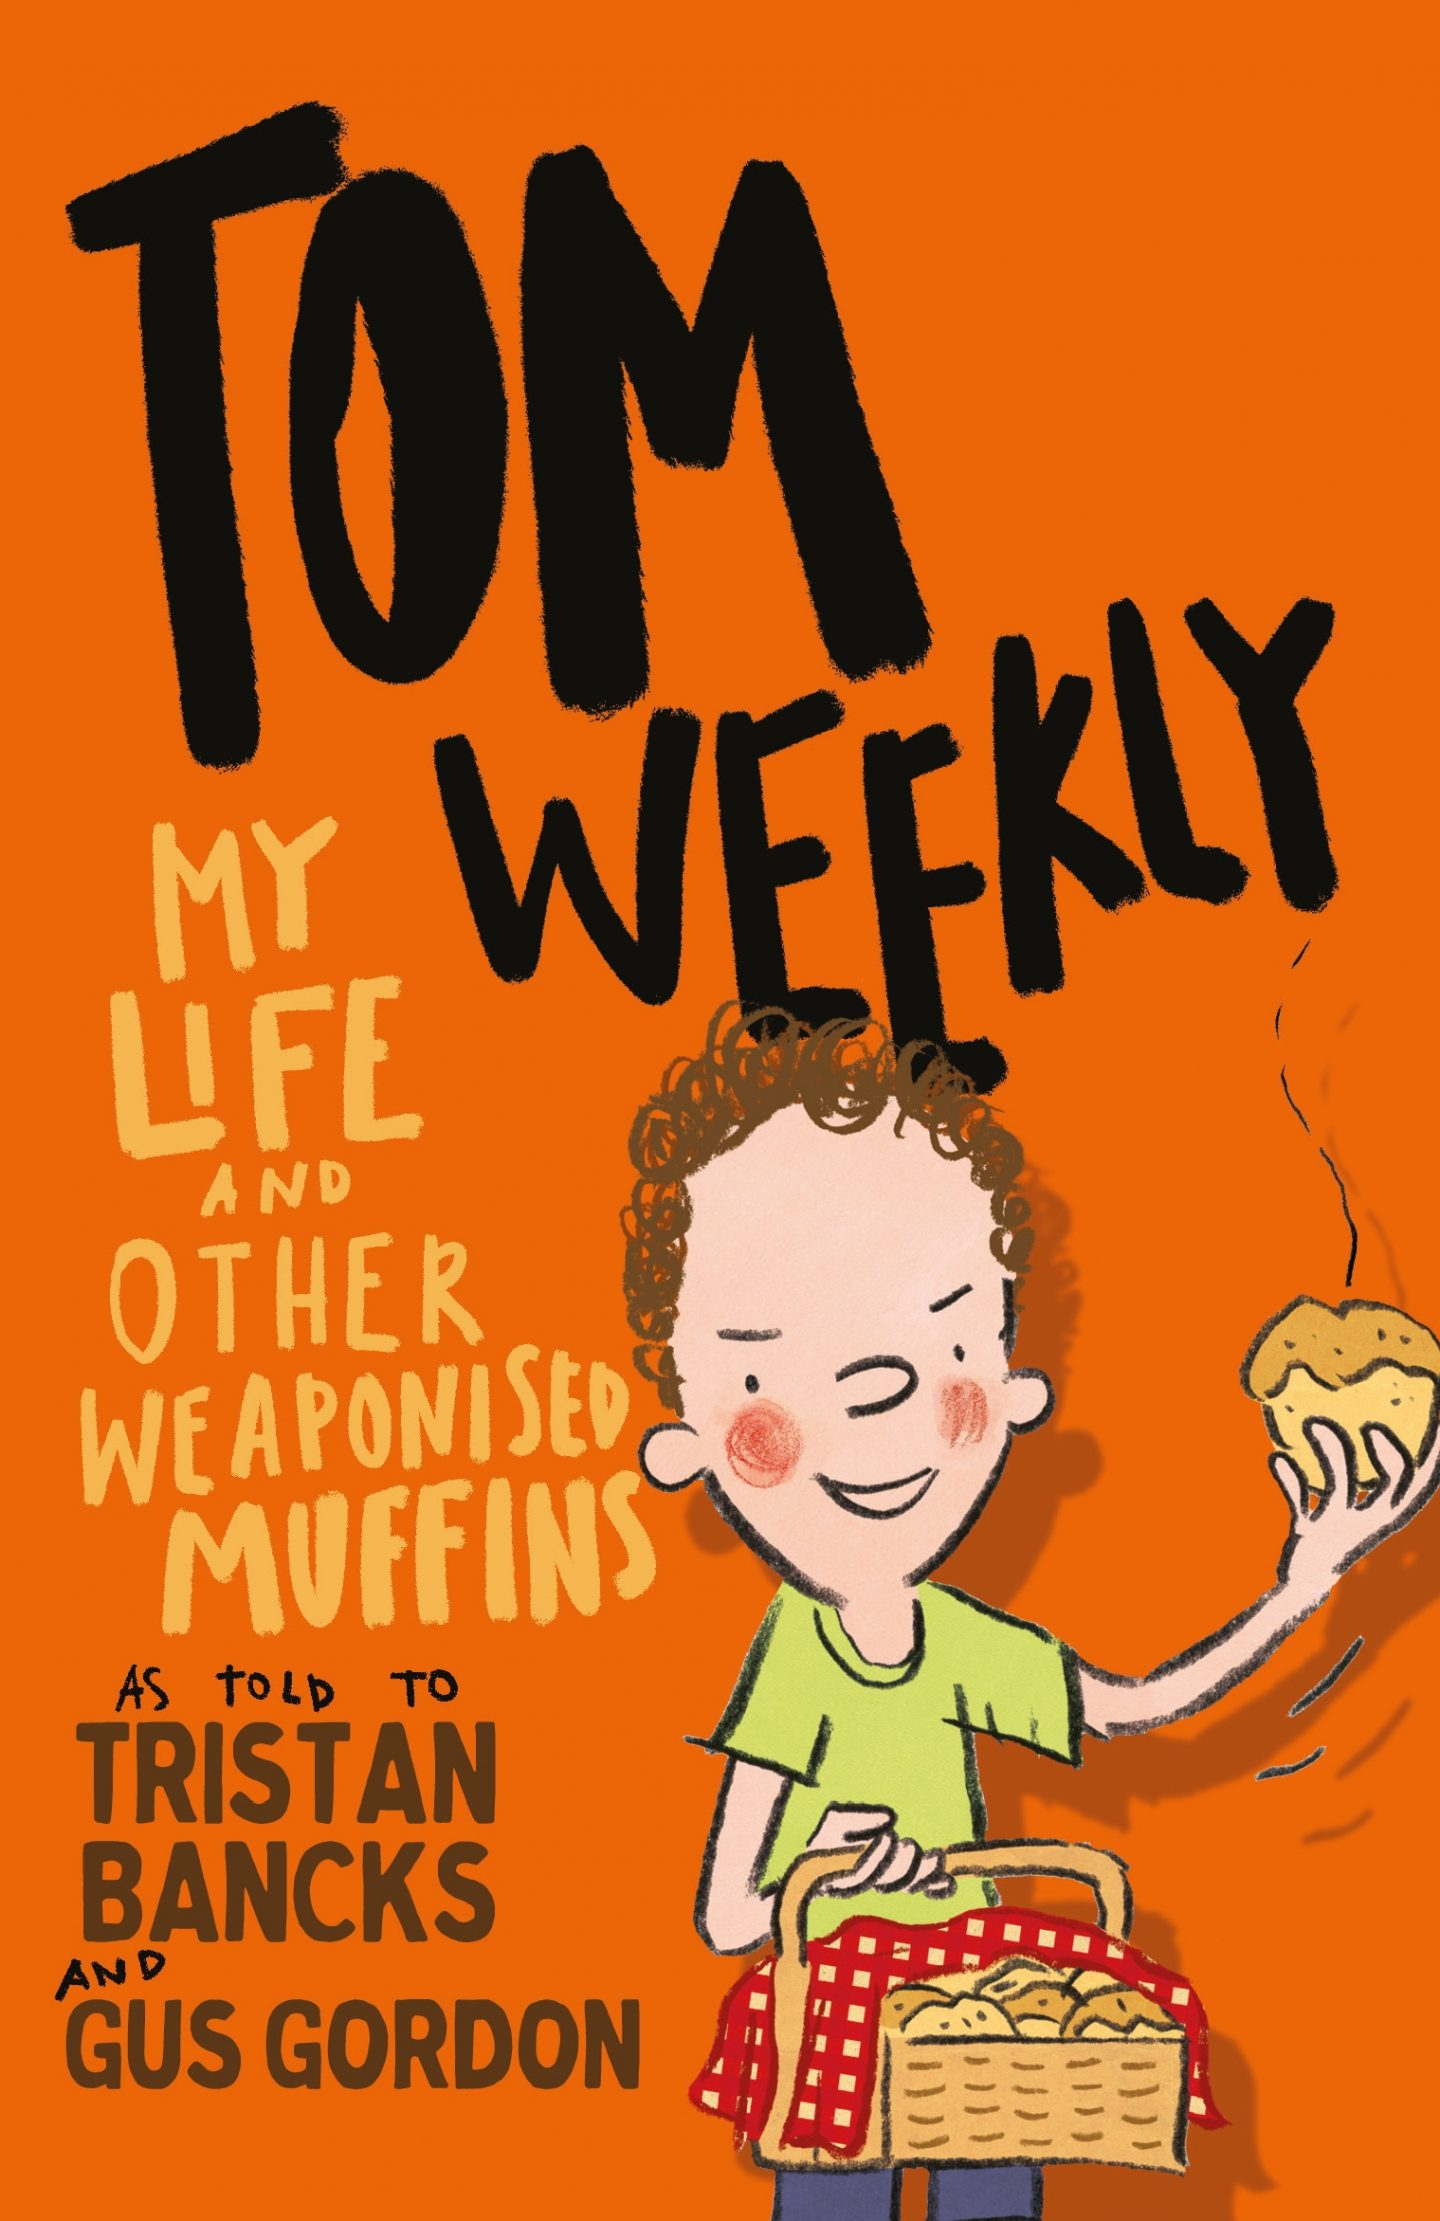 Tom Weekly My Life & Other Weaponised Muffins